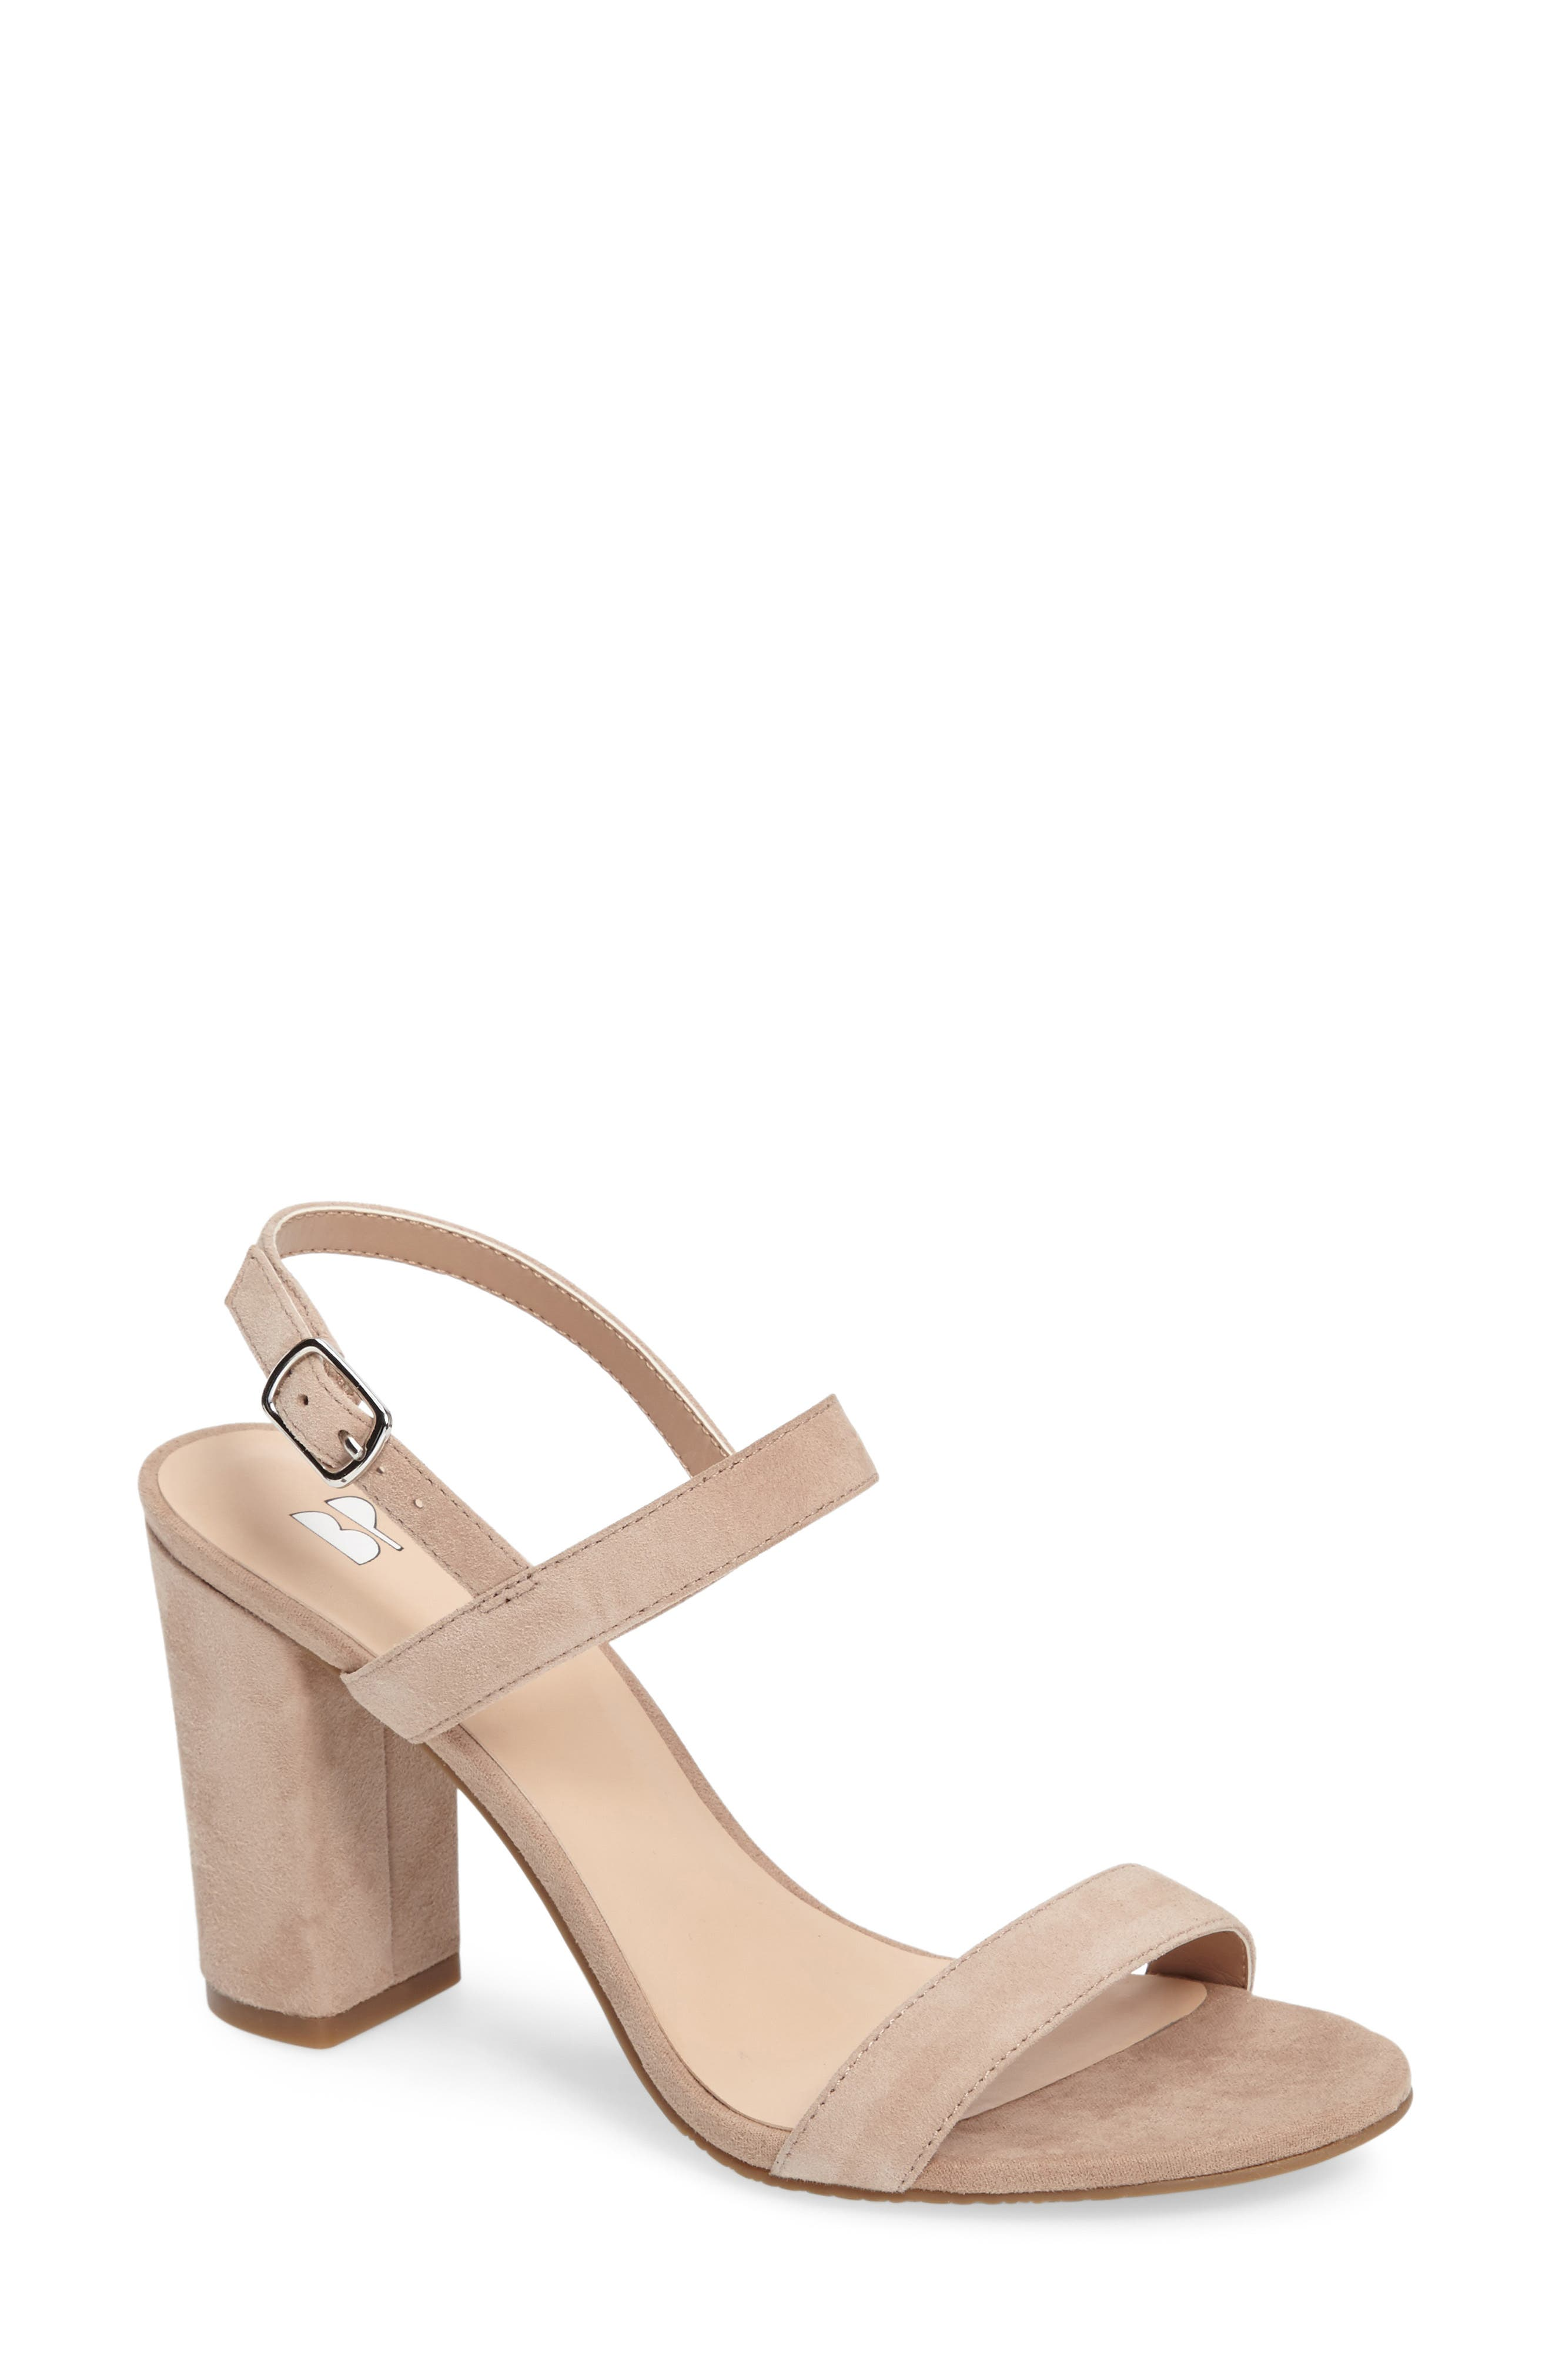 Lula Block Heel Slingback Sandal,                         Main,                         color, BLUSH SUEDE